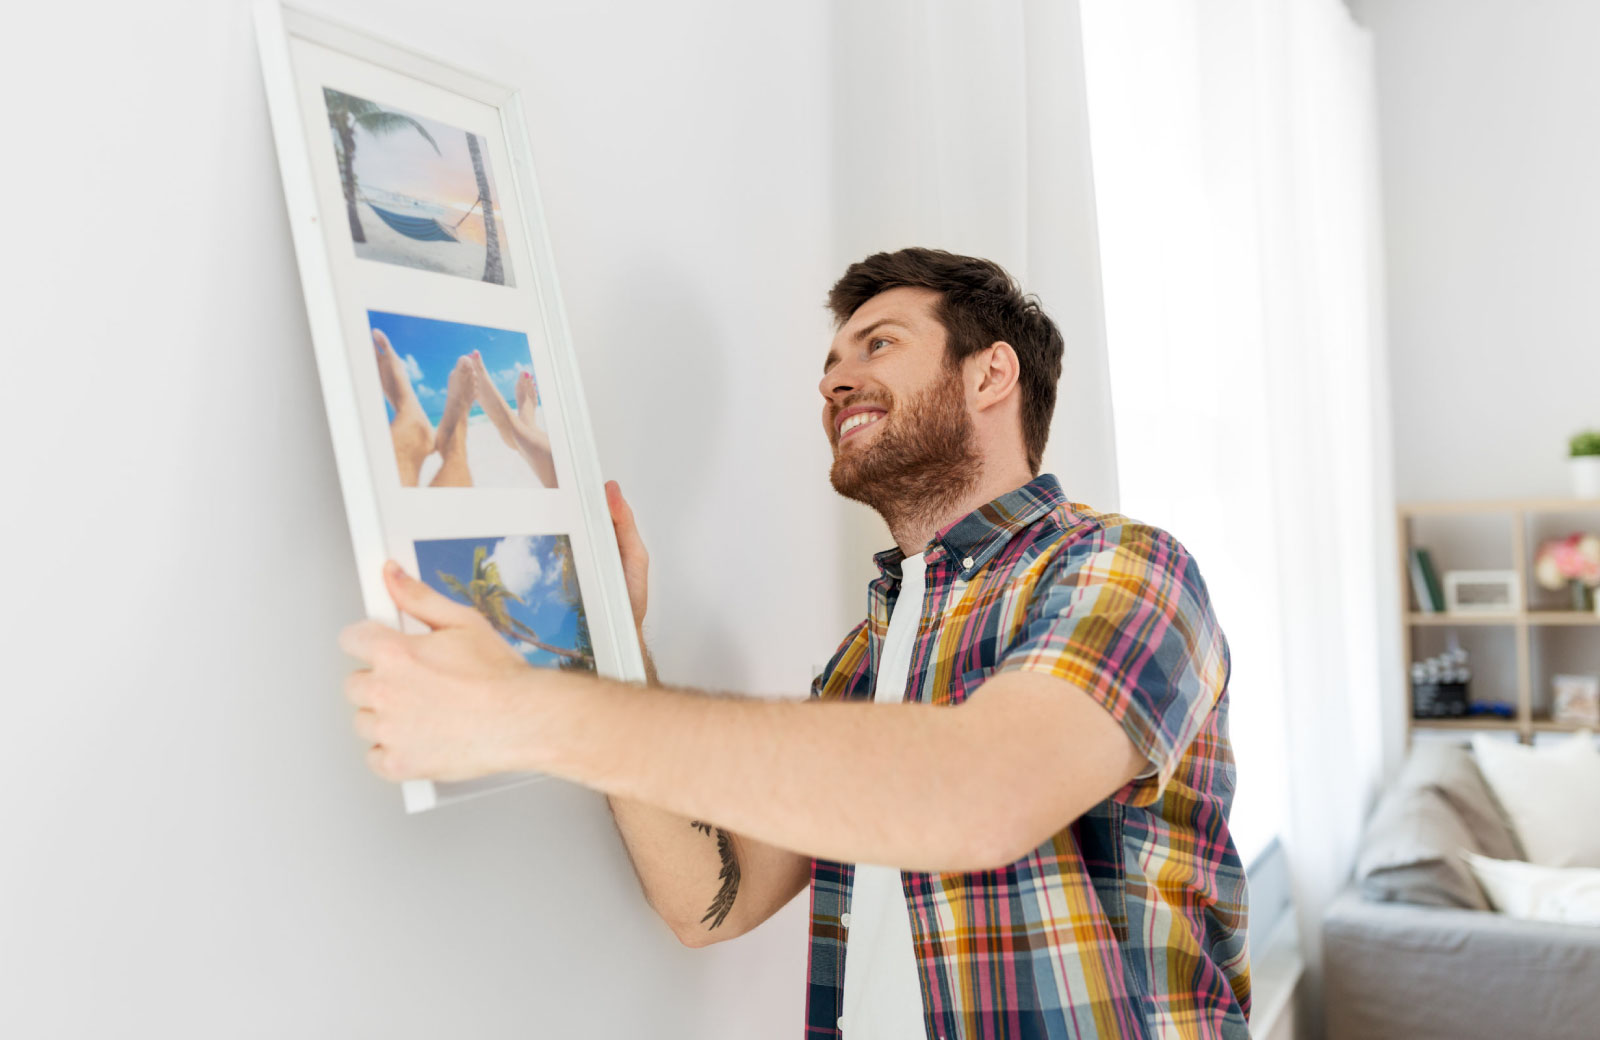 man setting up house decor